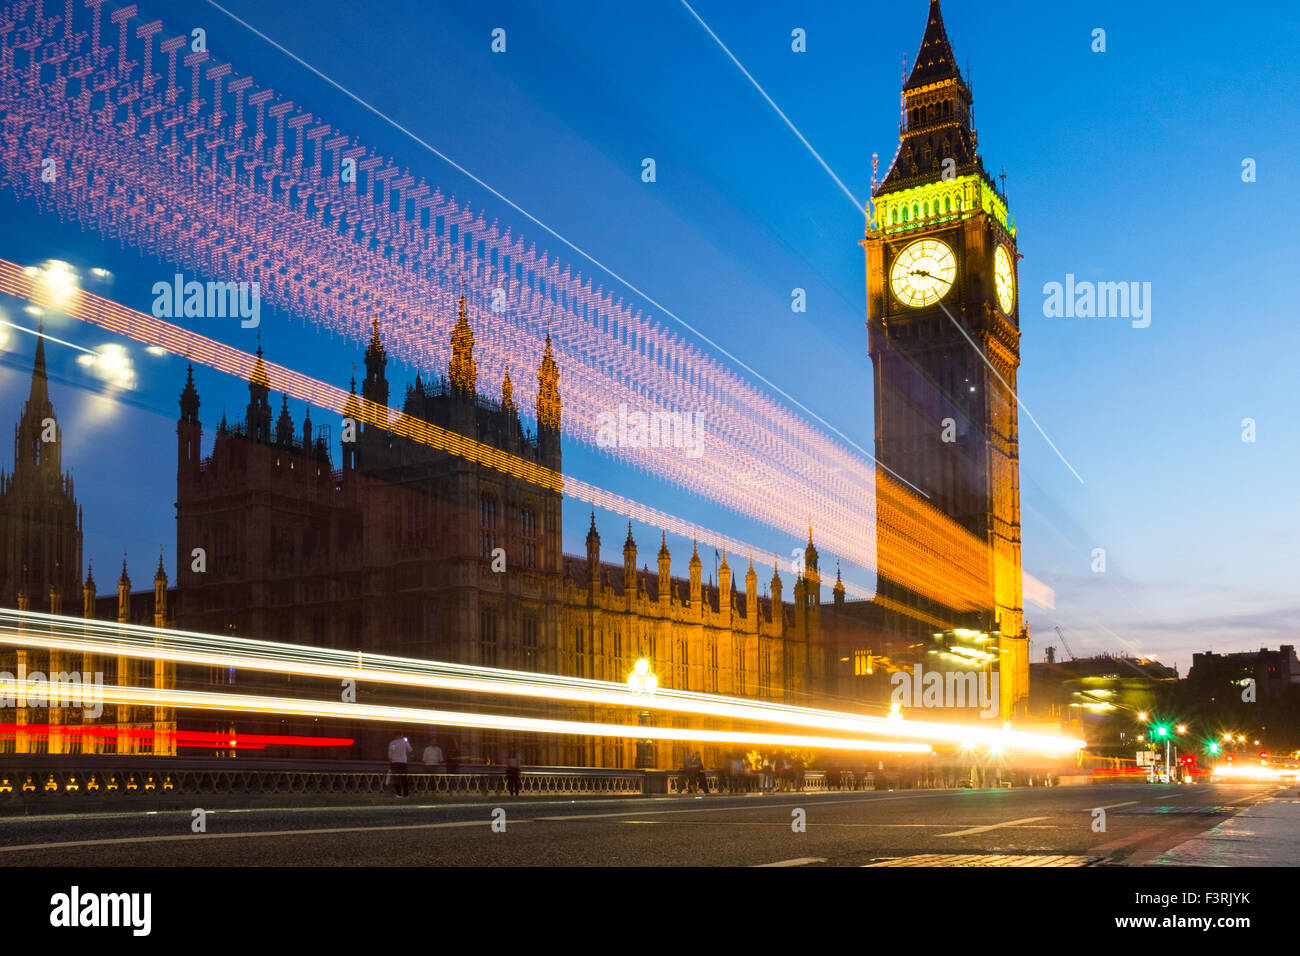 Big Ben and Palace of Westminster, London, United Kingdom - Stock Image